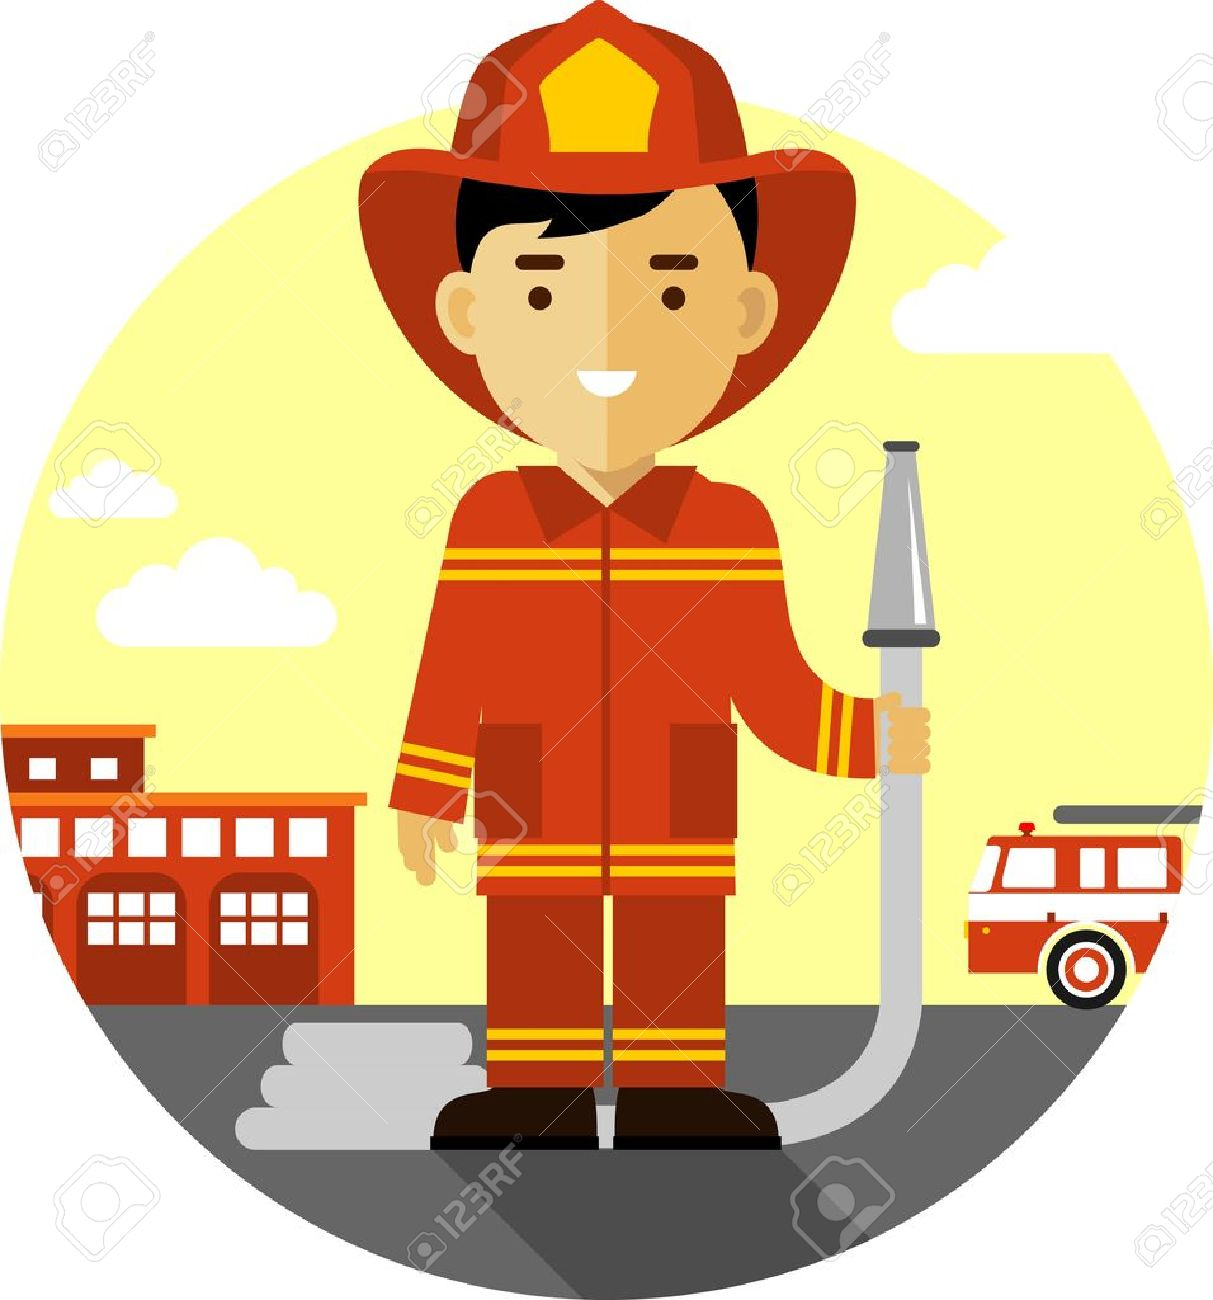 6850 fire department cliparts stock vector and royalty free fire firefighter in uniform on background with fire truck and fire station illustration buycottarizona Choice Image